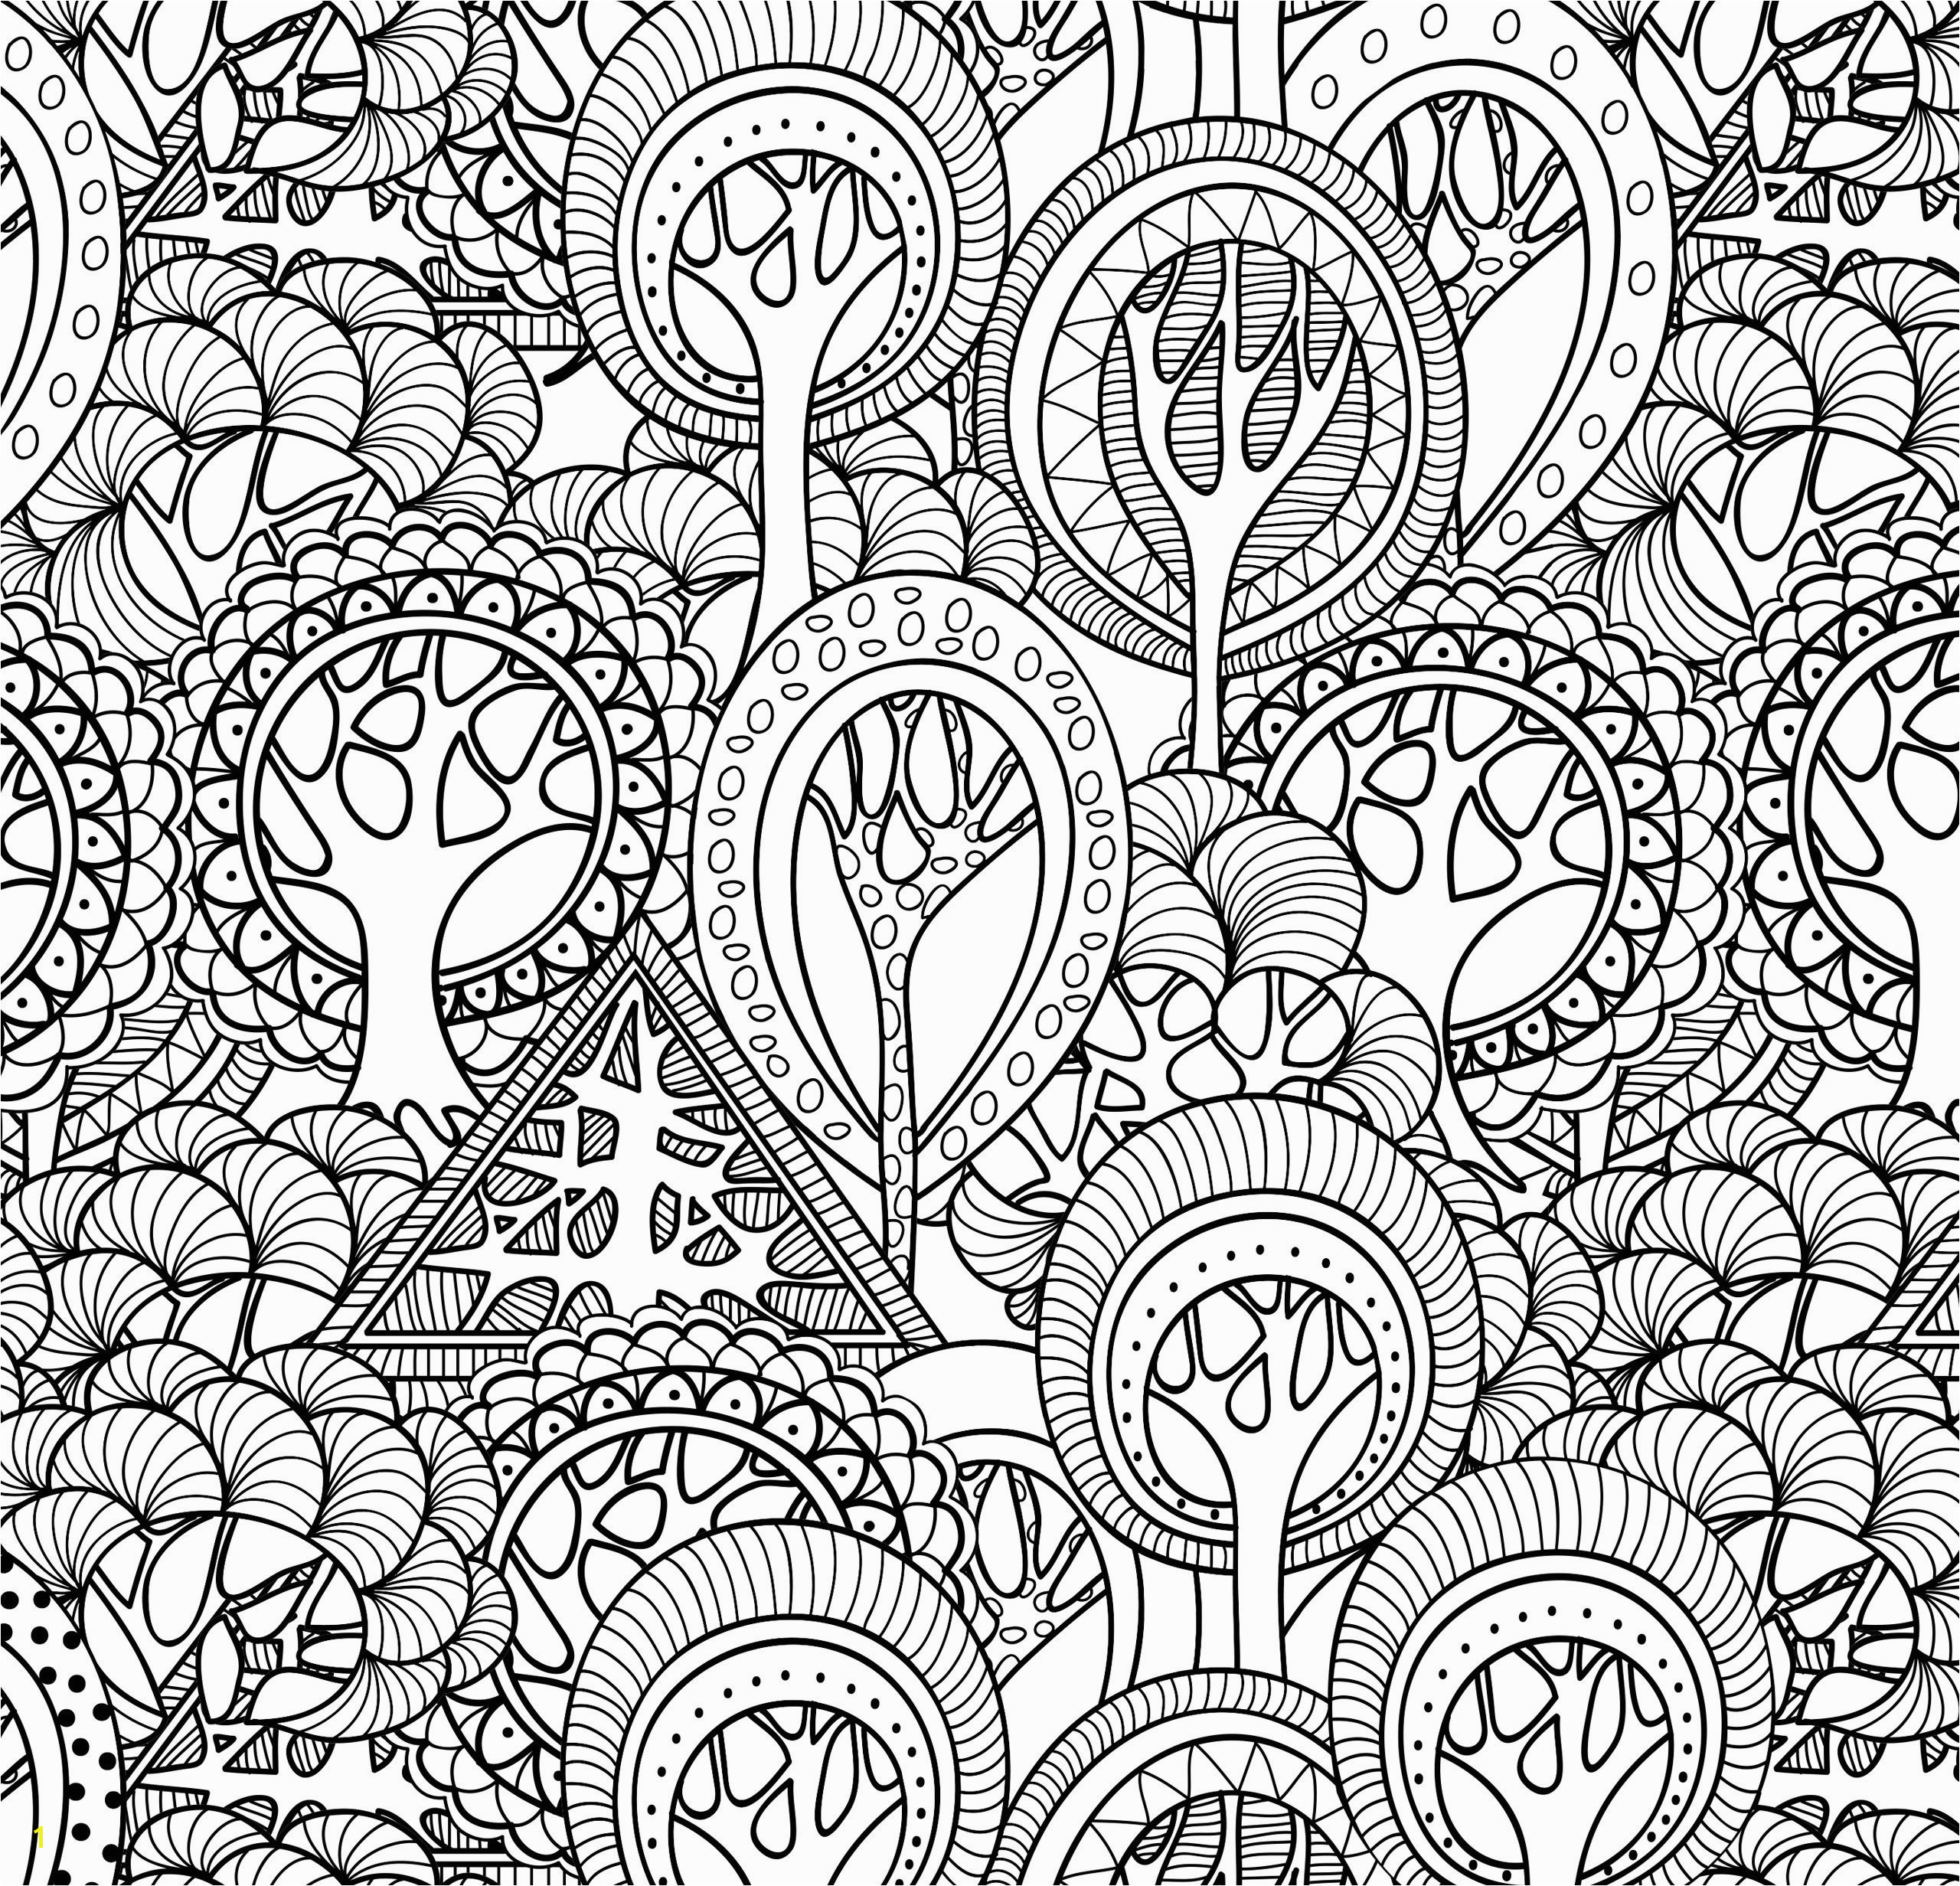 Downloadable Adult Coloring Books Elegant Awesome Printable Coloring Pages for Adults Unique Cool Od Dog –